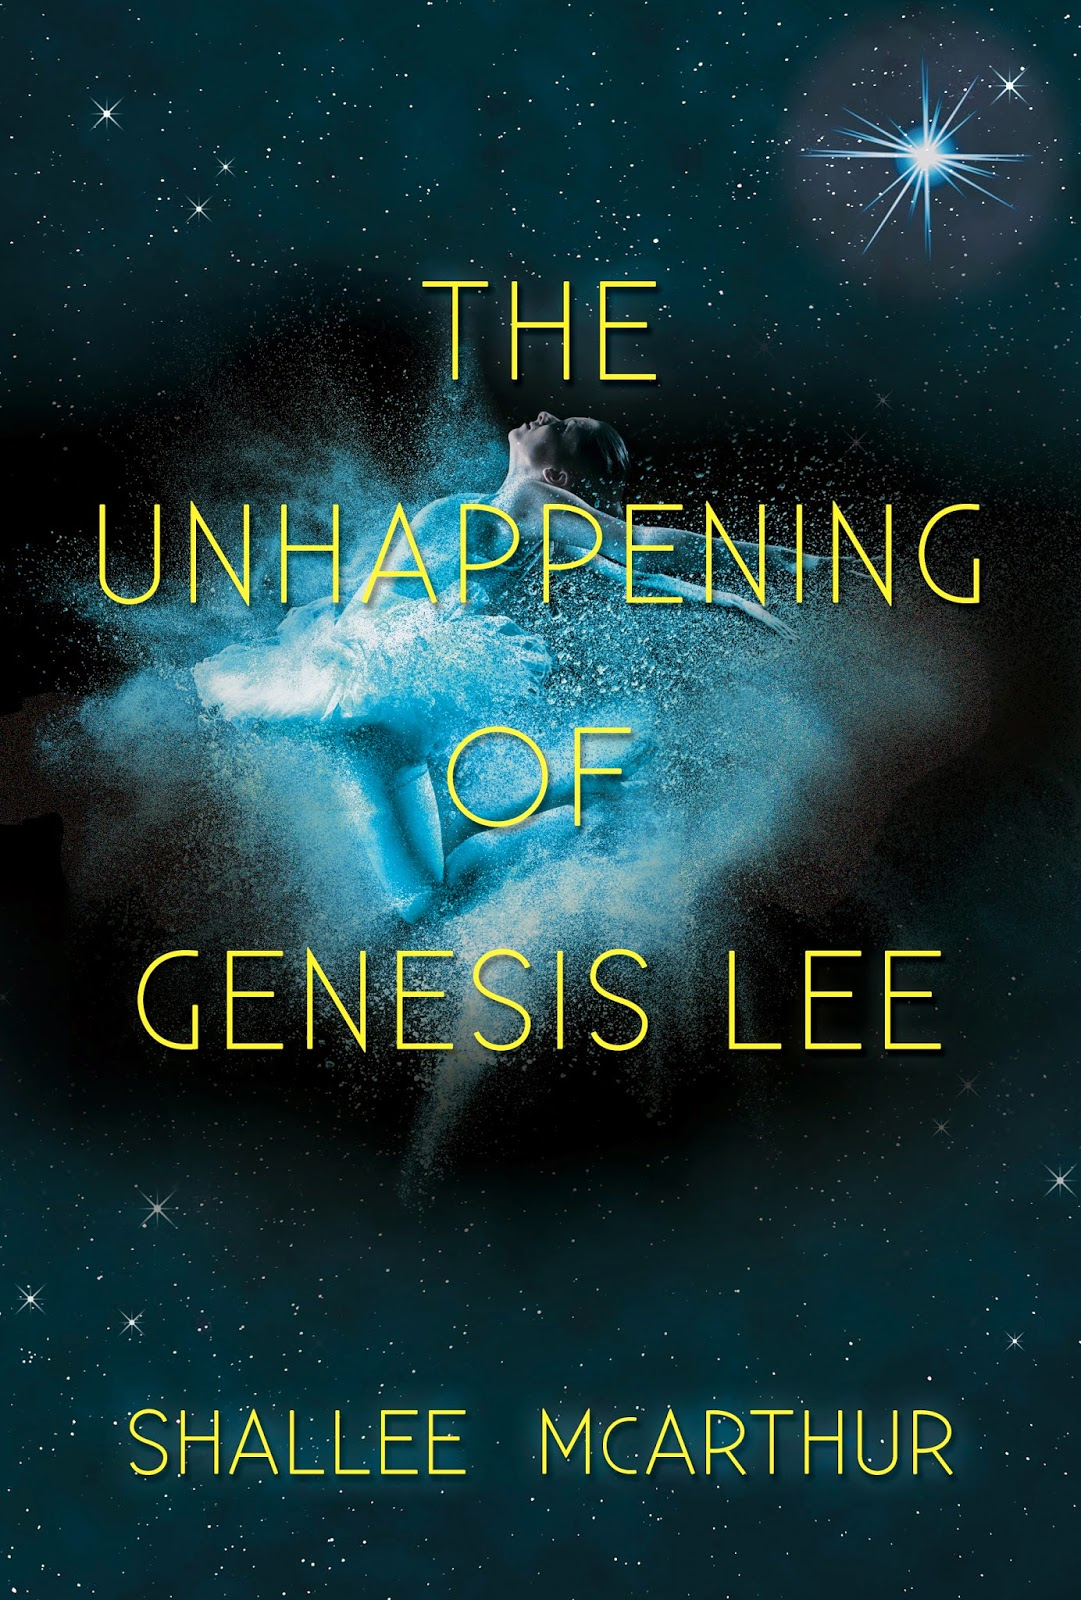 http://www.amazon.com/The-Unhappening-Genesis-Shallee-McArthur/dp/1629146471/ref=sr_1_1?ie=UTF8&qid=1399257938&sr=8-1&keywords=the+unhappening+of+genesis+lee